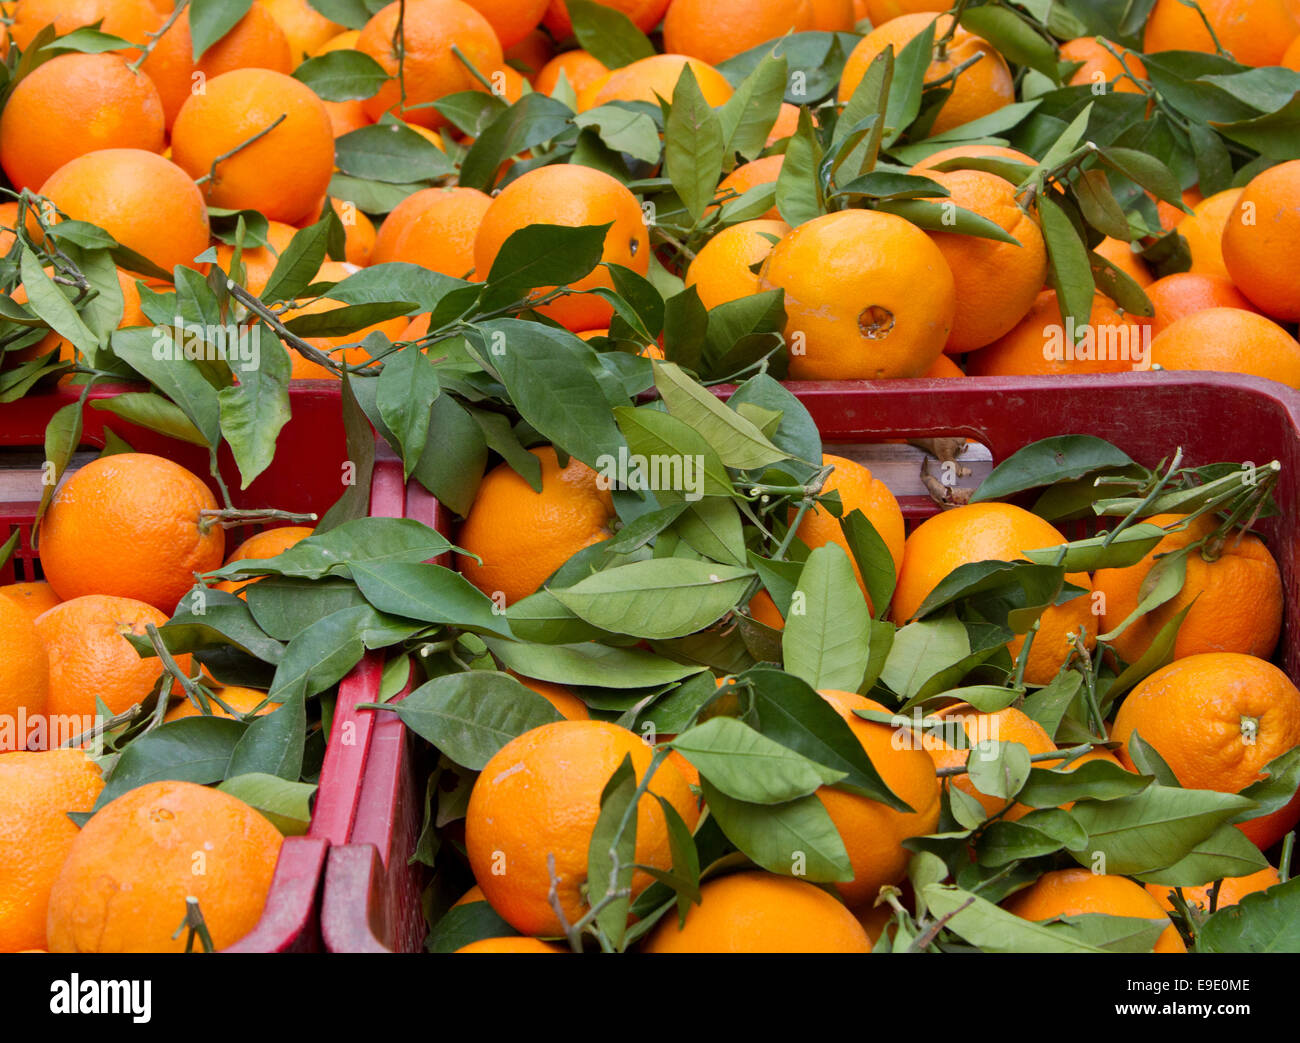 Baskets of Spanish oranges, scattered with orange leaves, in an open-air market in Almeria, Spain. Stock Photo